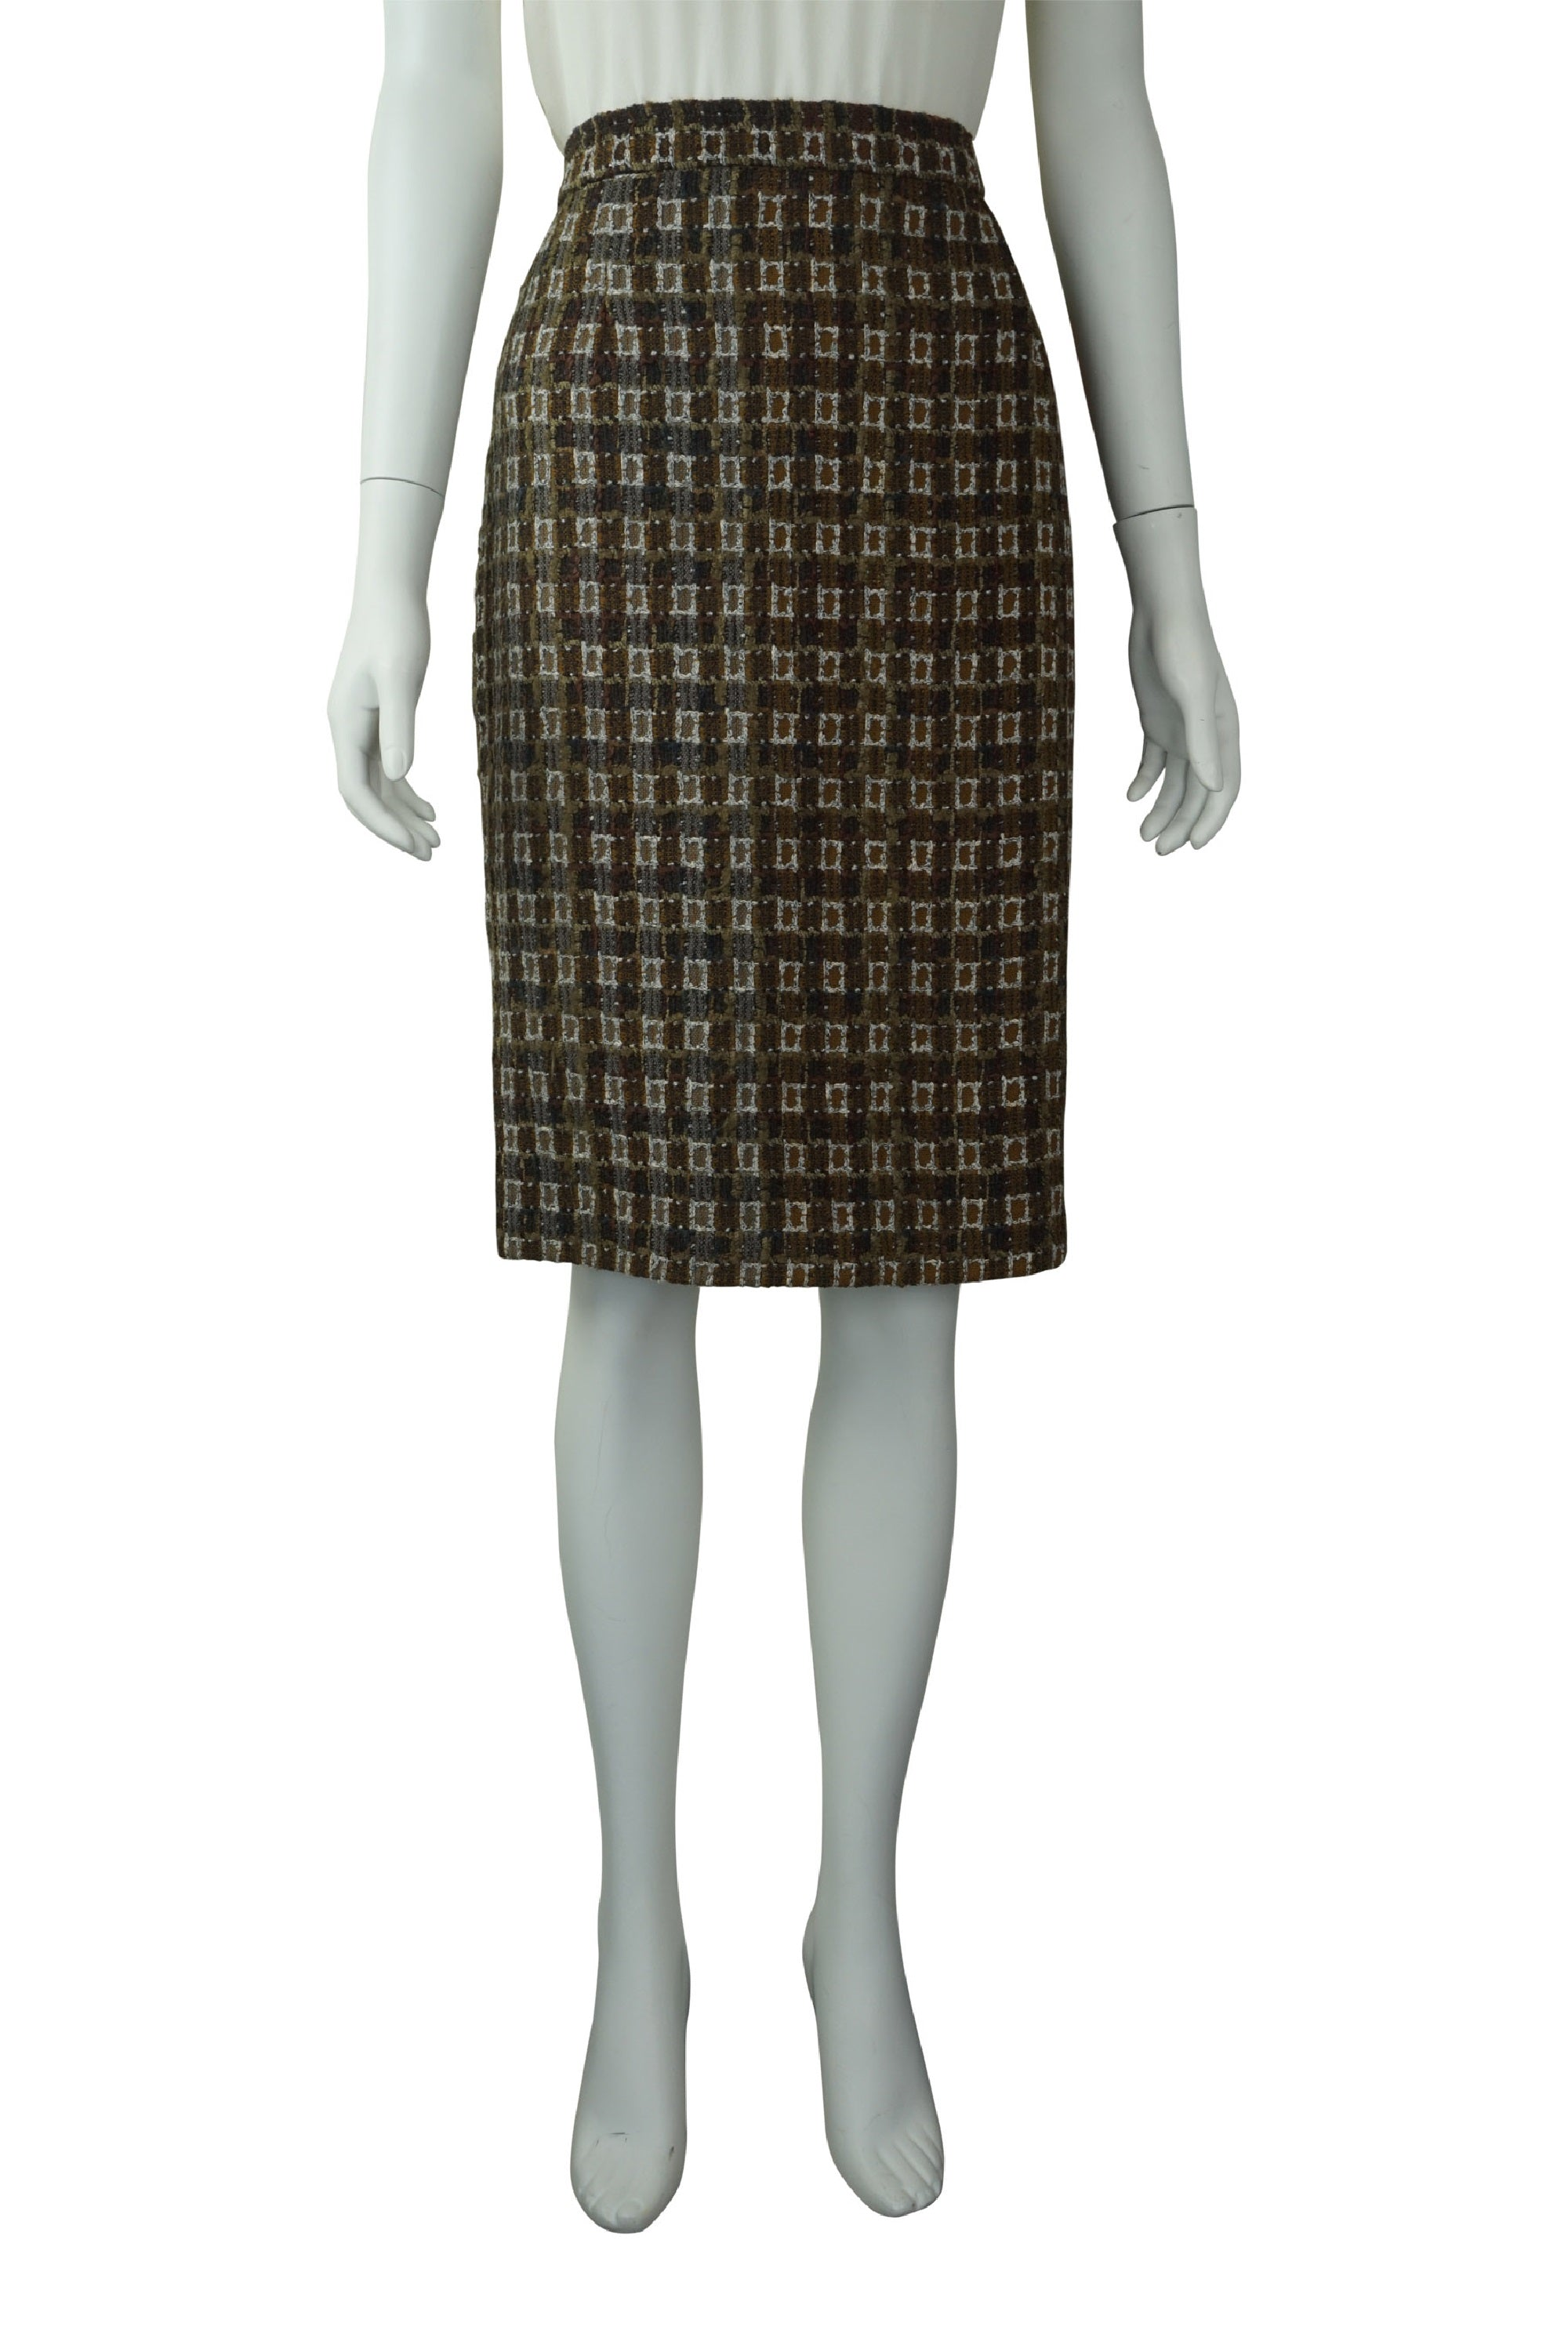 Christian Lacroix Silk Pencil Skirt Buy Cheap Pictures Sale Low Shipping Free Shipping Footlocker hnRAIFVz